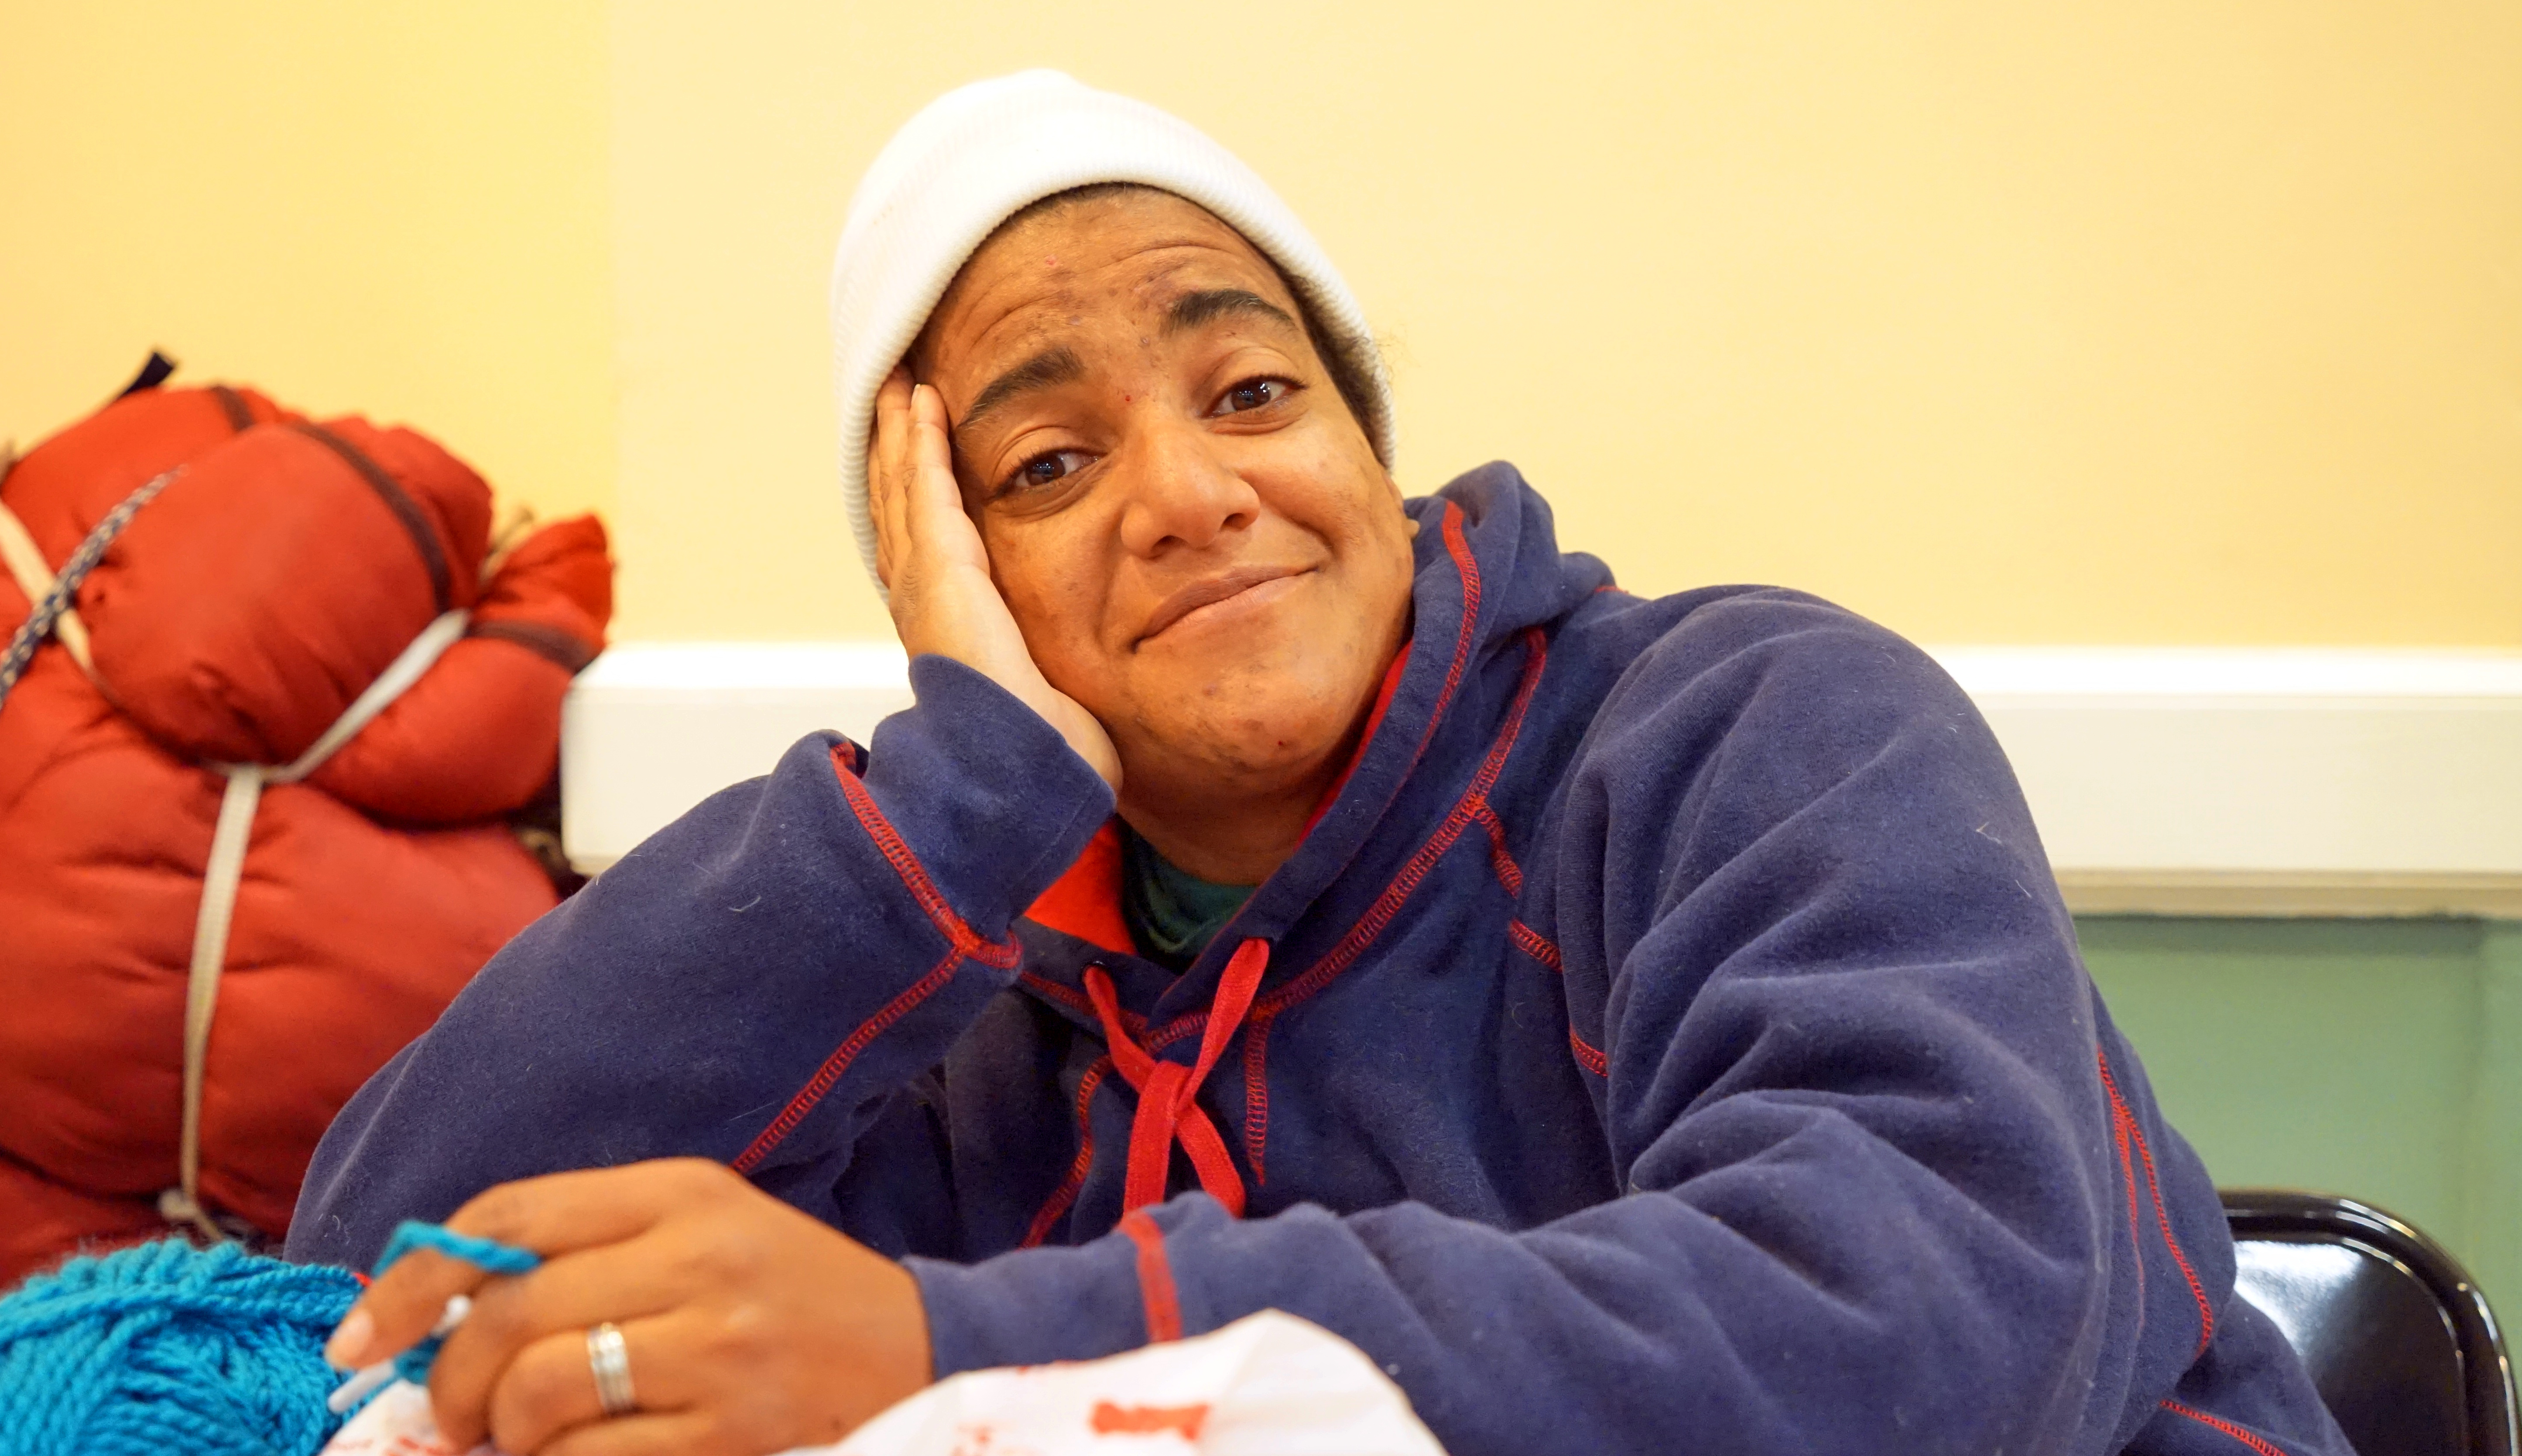 A smiling homeless woman with her elbow propping her head up on a table.